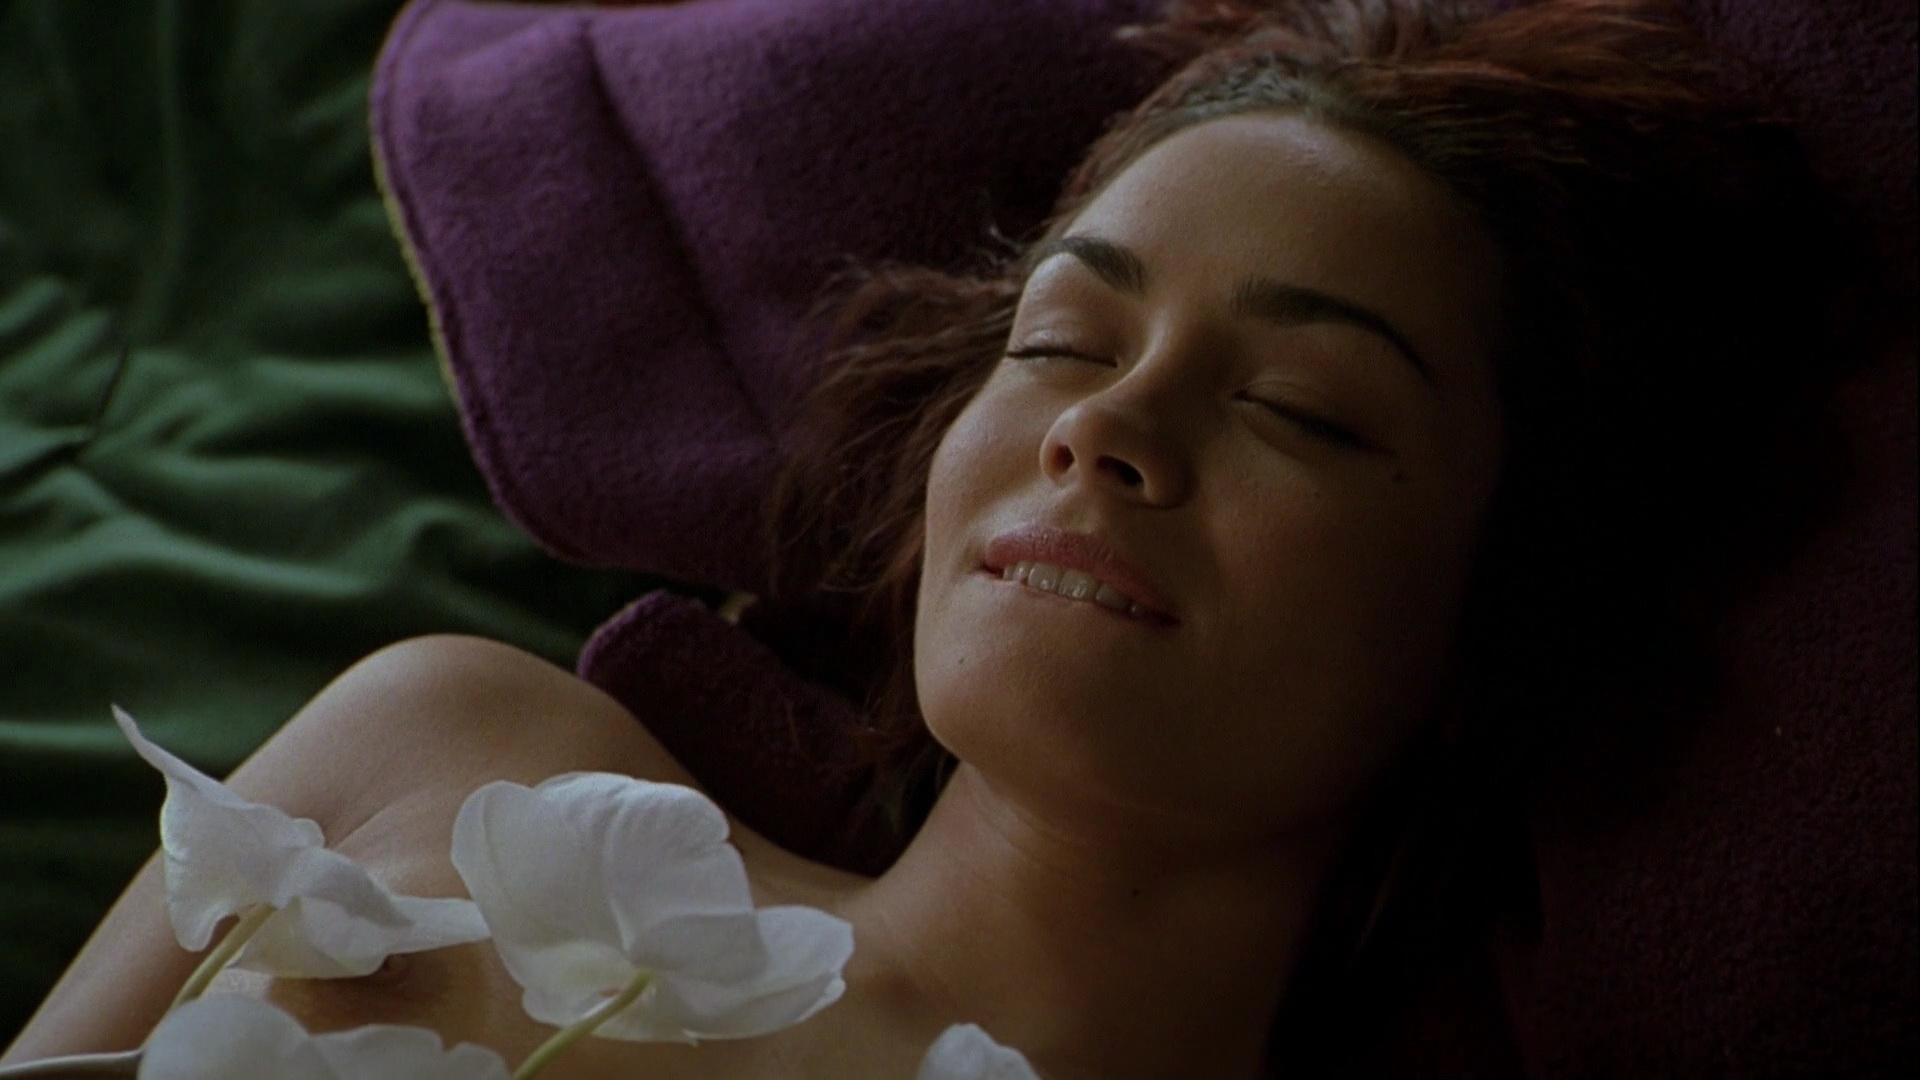 Magnificent Gif shannyn sossamon xxx suggest